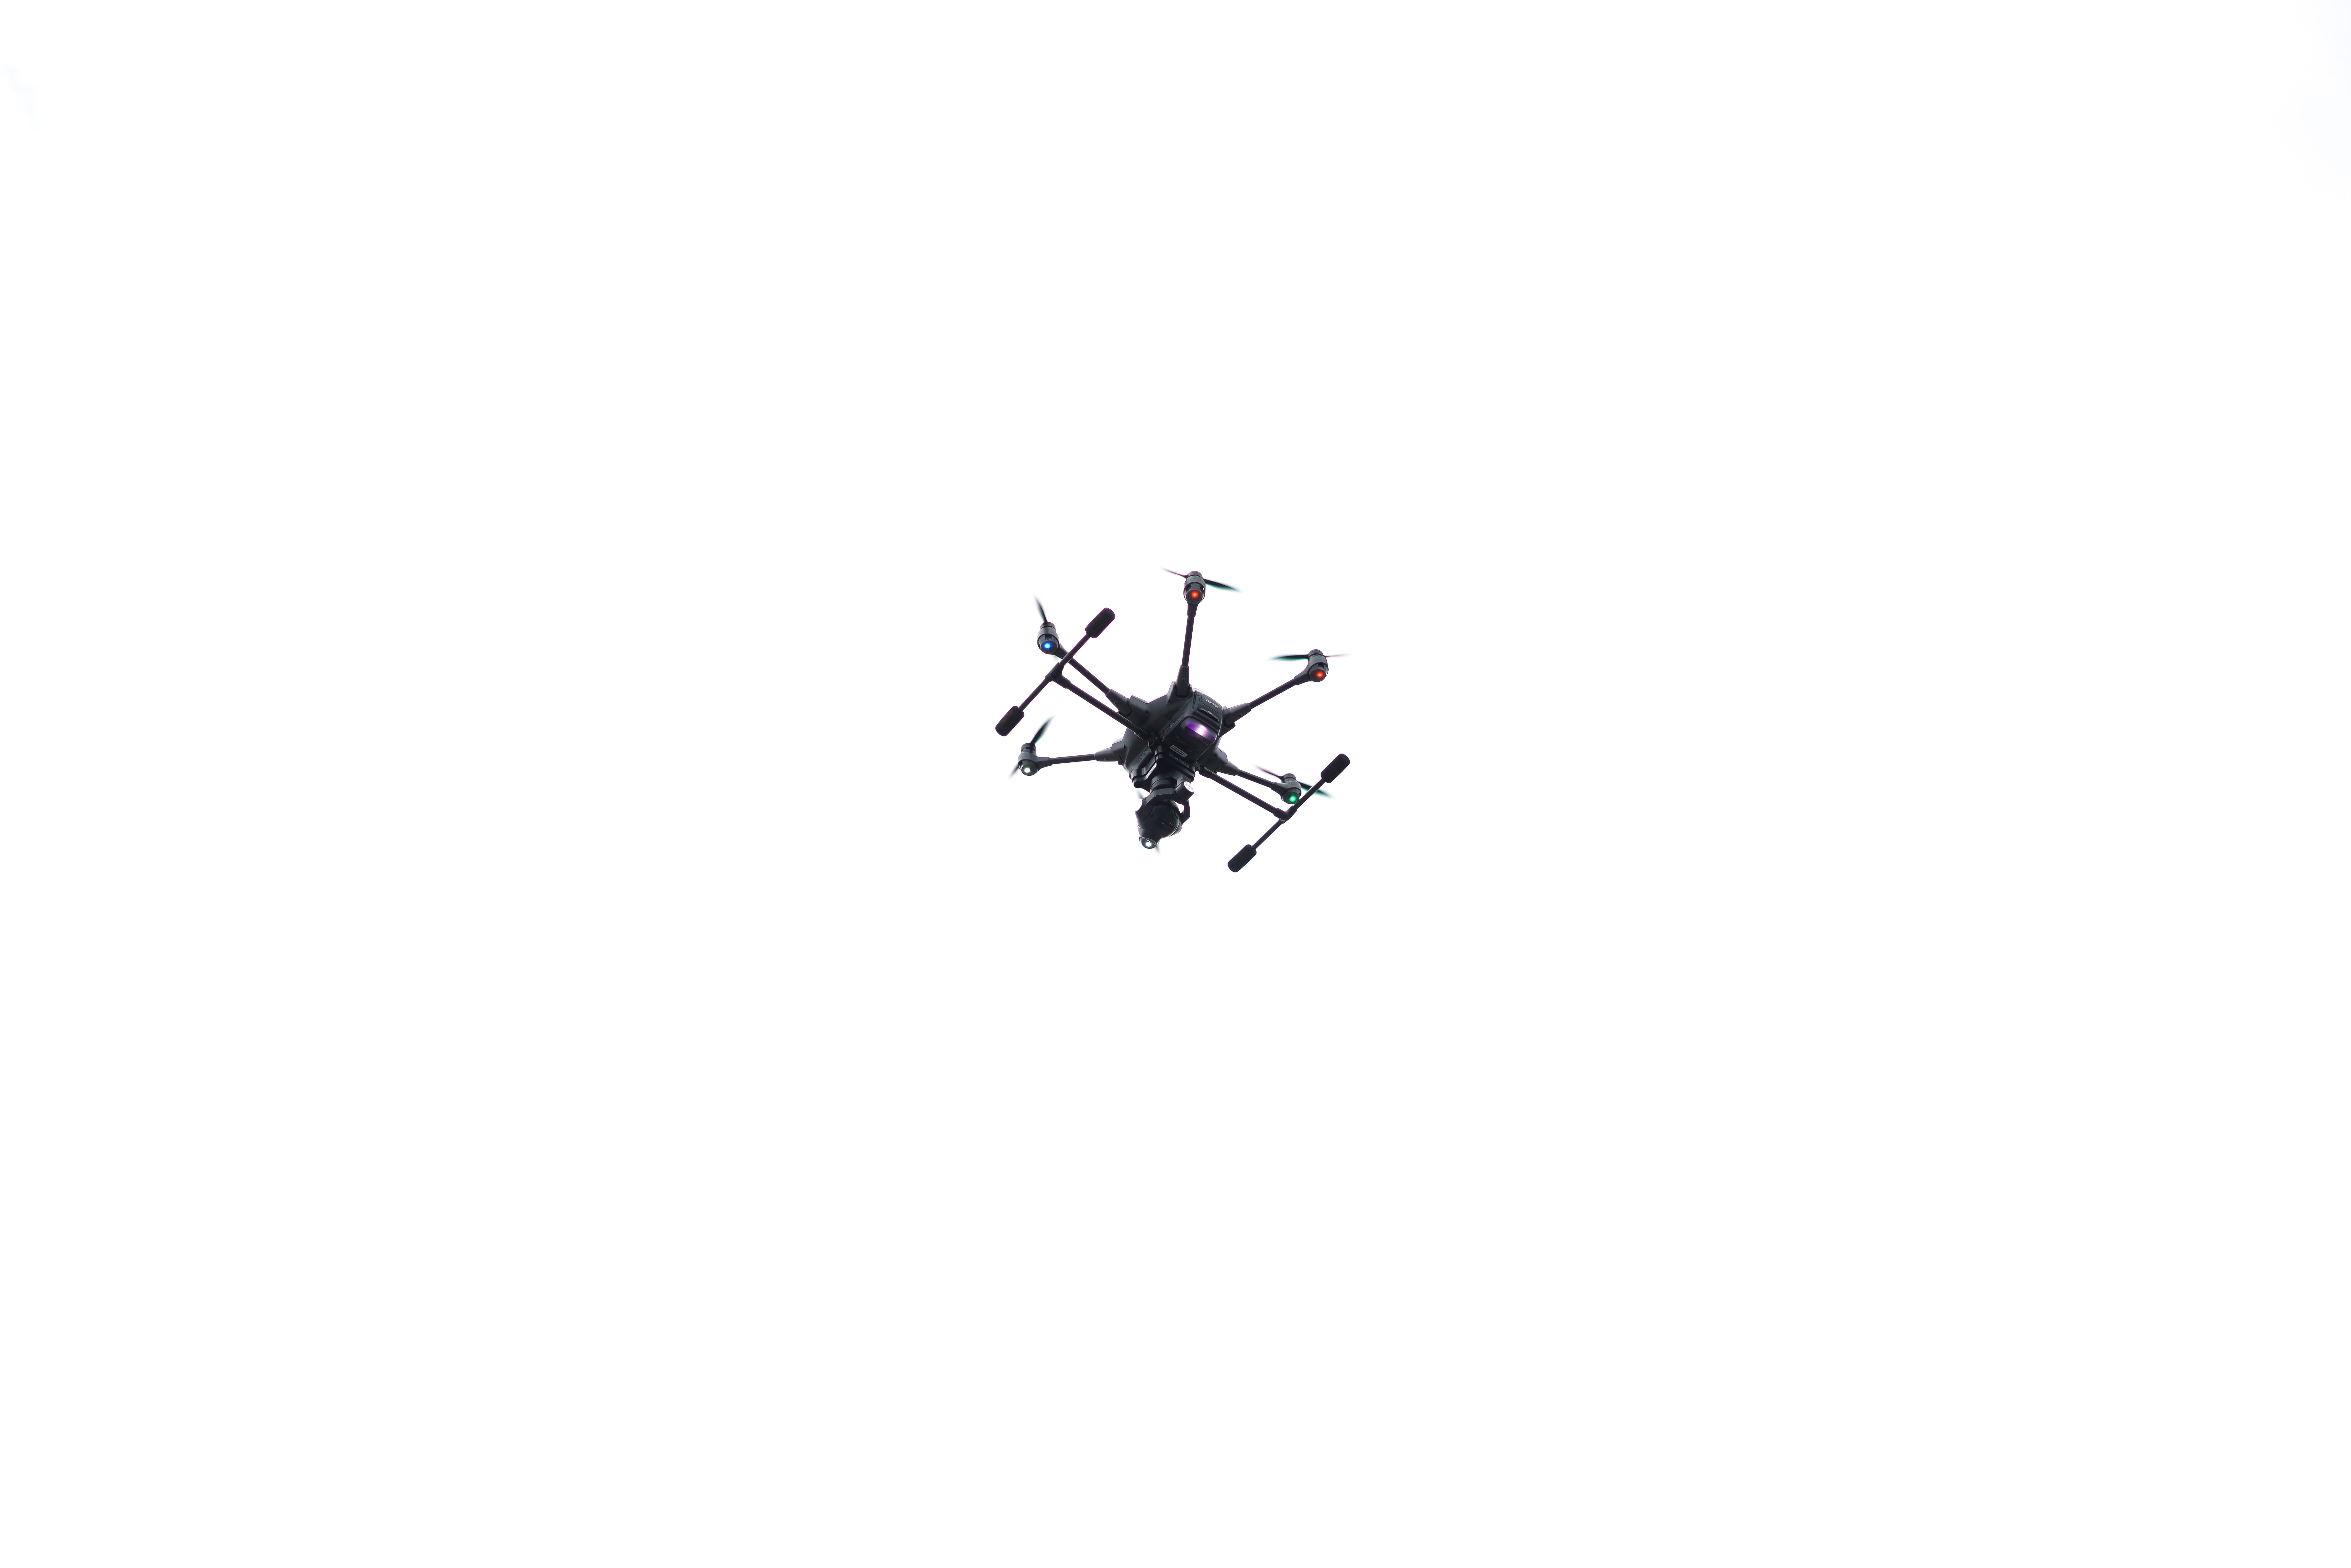 in flight quadcopter